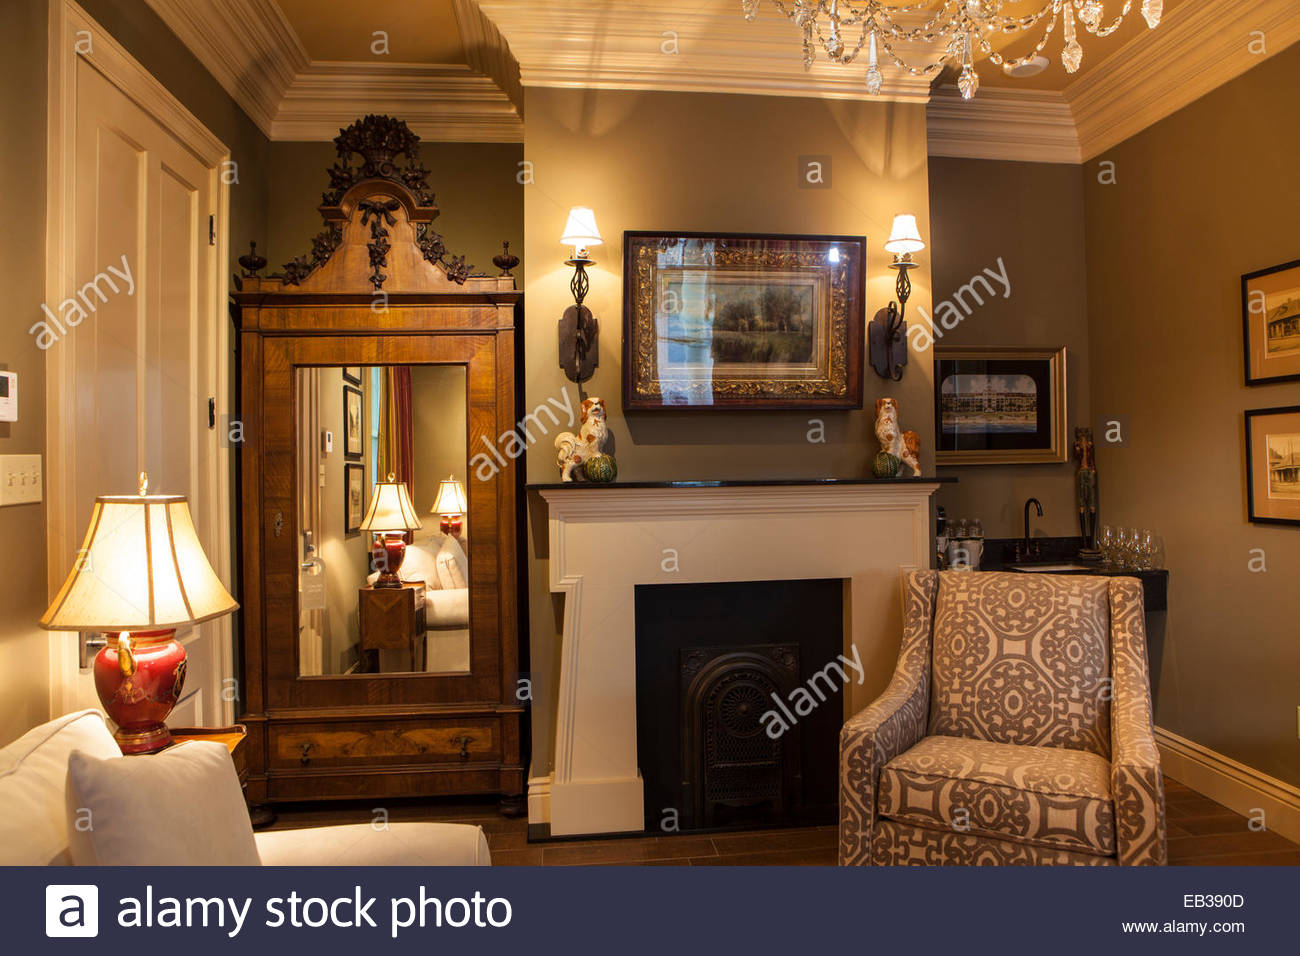 A Room At A Guest Cottage Of The Houmas House Plantation And Gardens Stock Photo Royalty Free